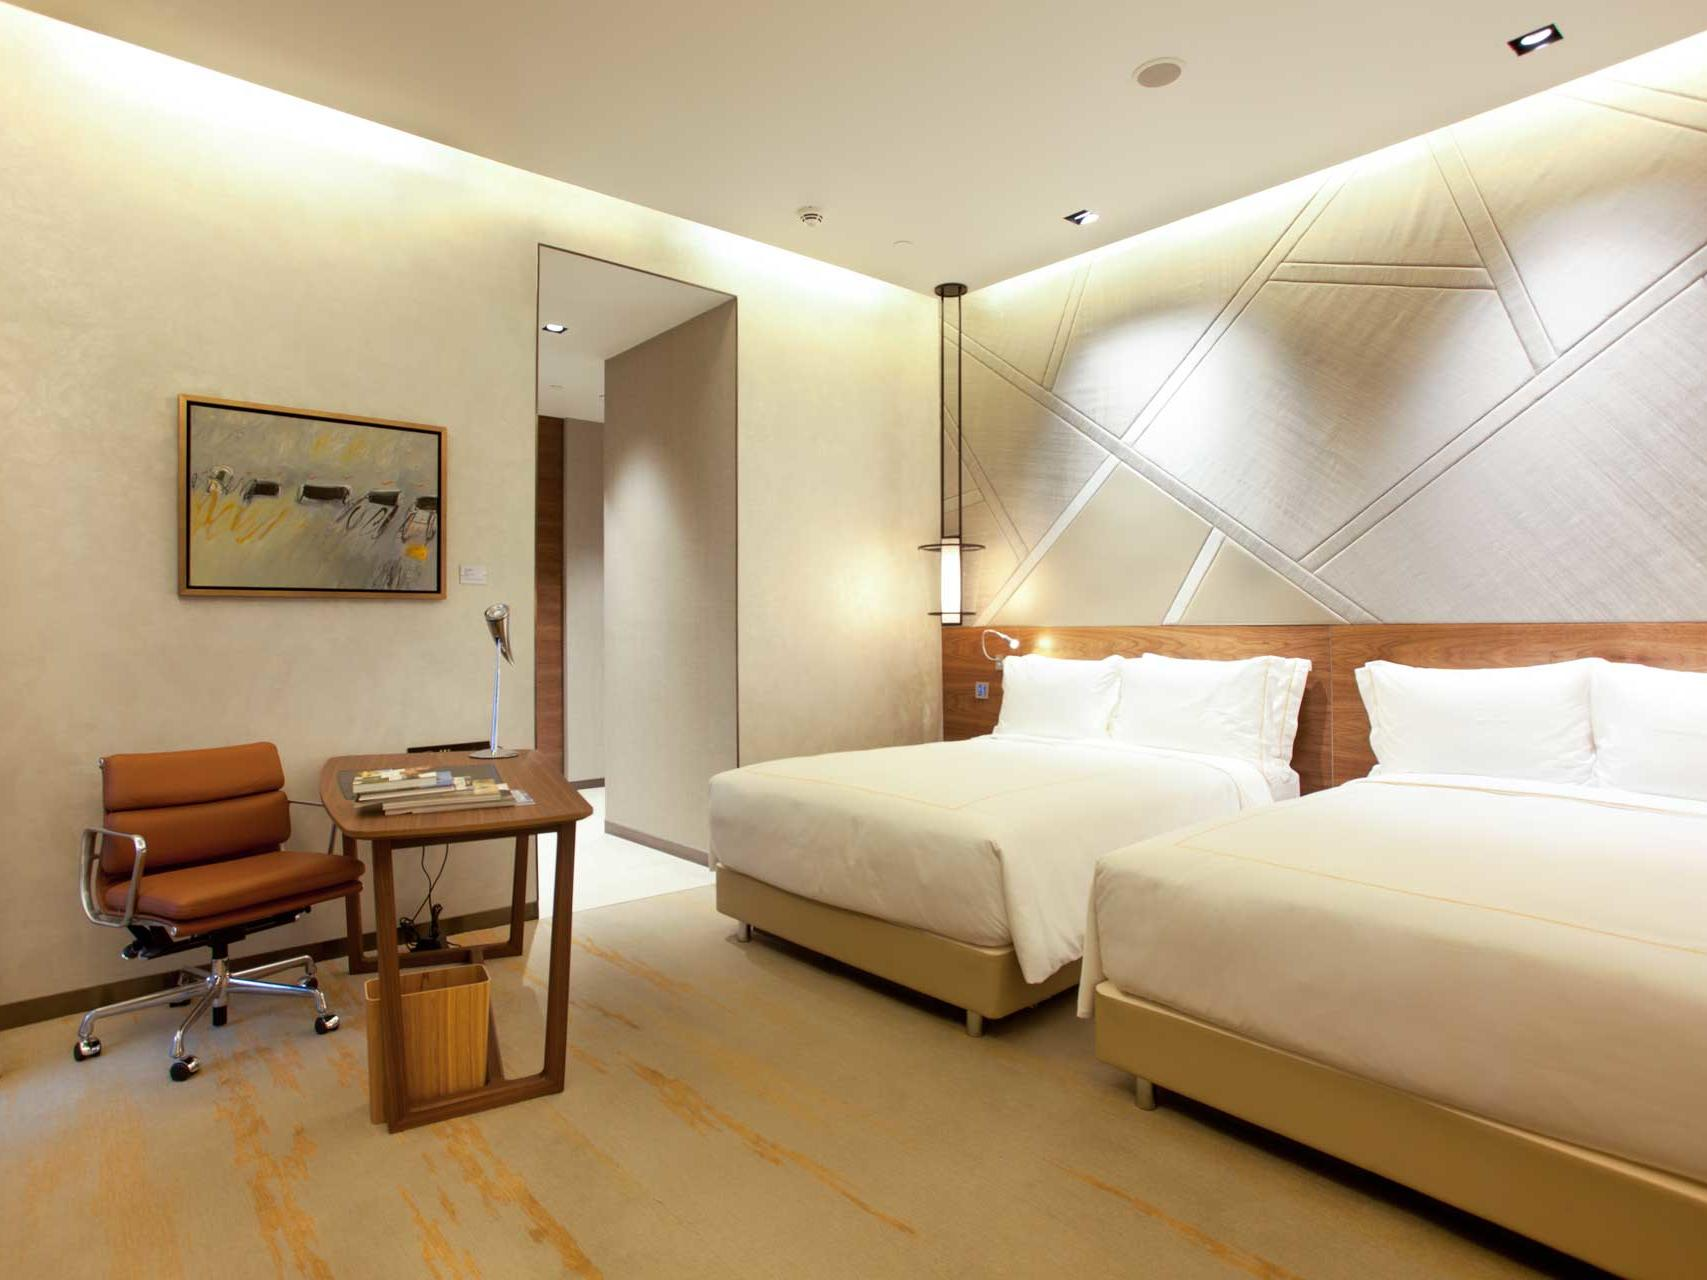 Interior of Orchid standard bedroom at one farrer hotel